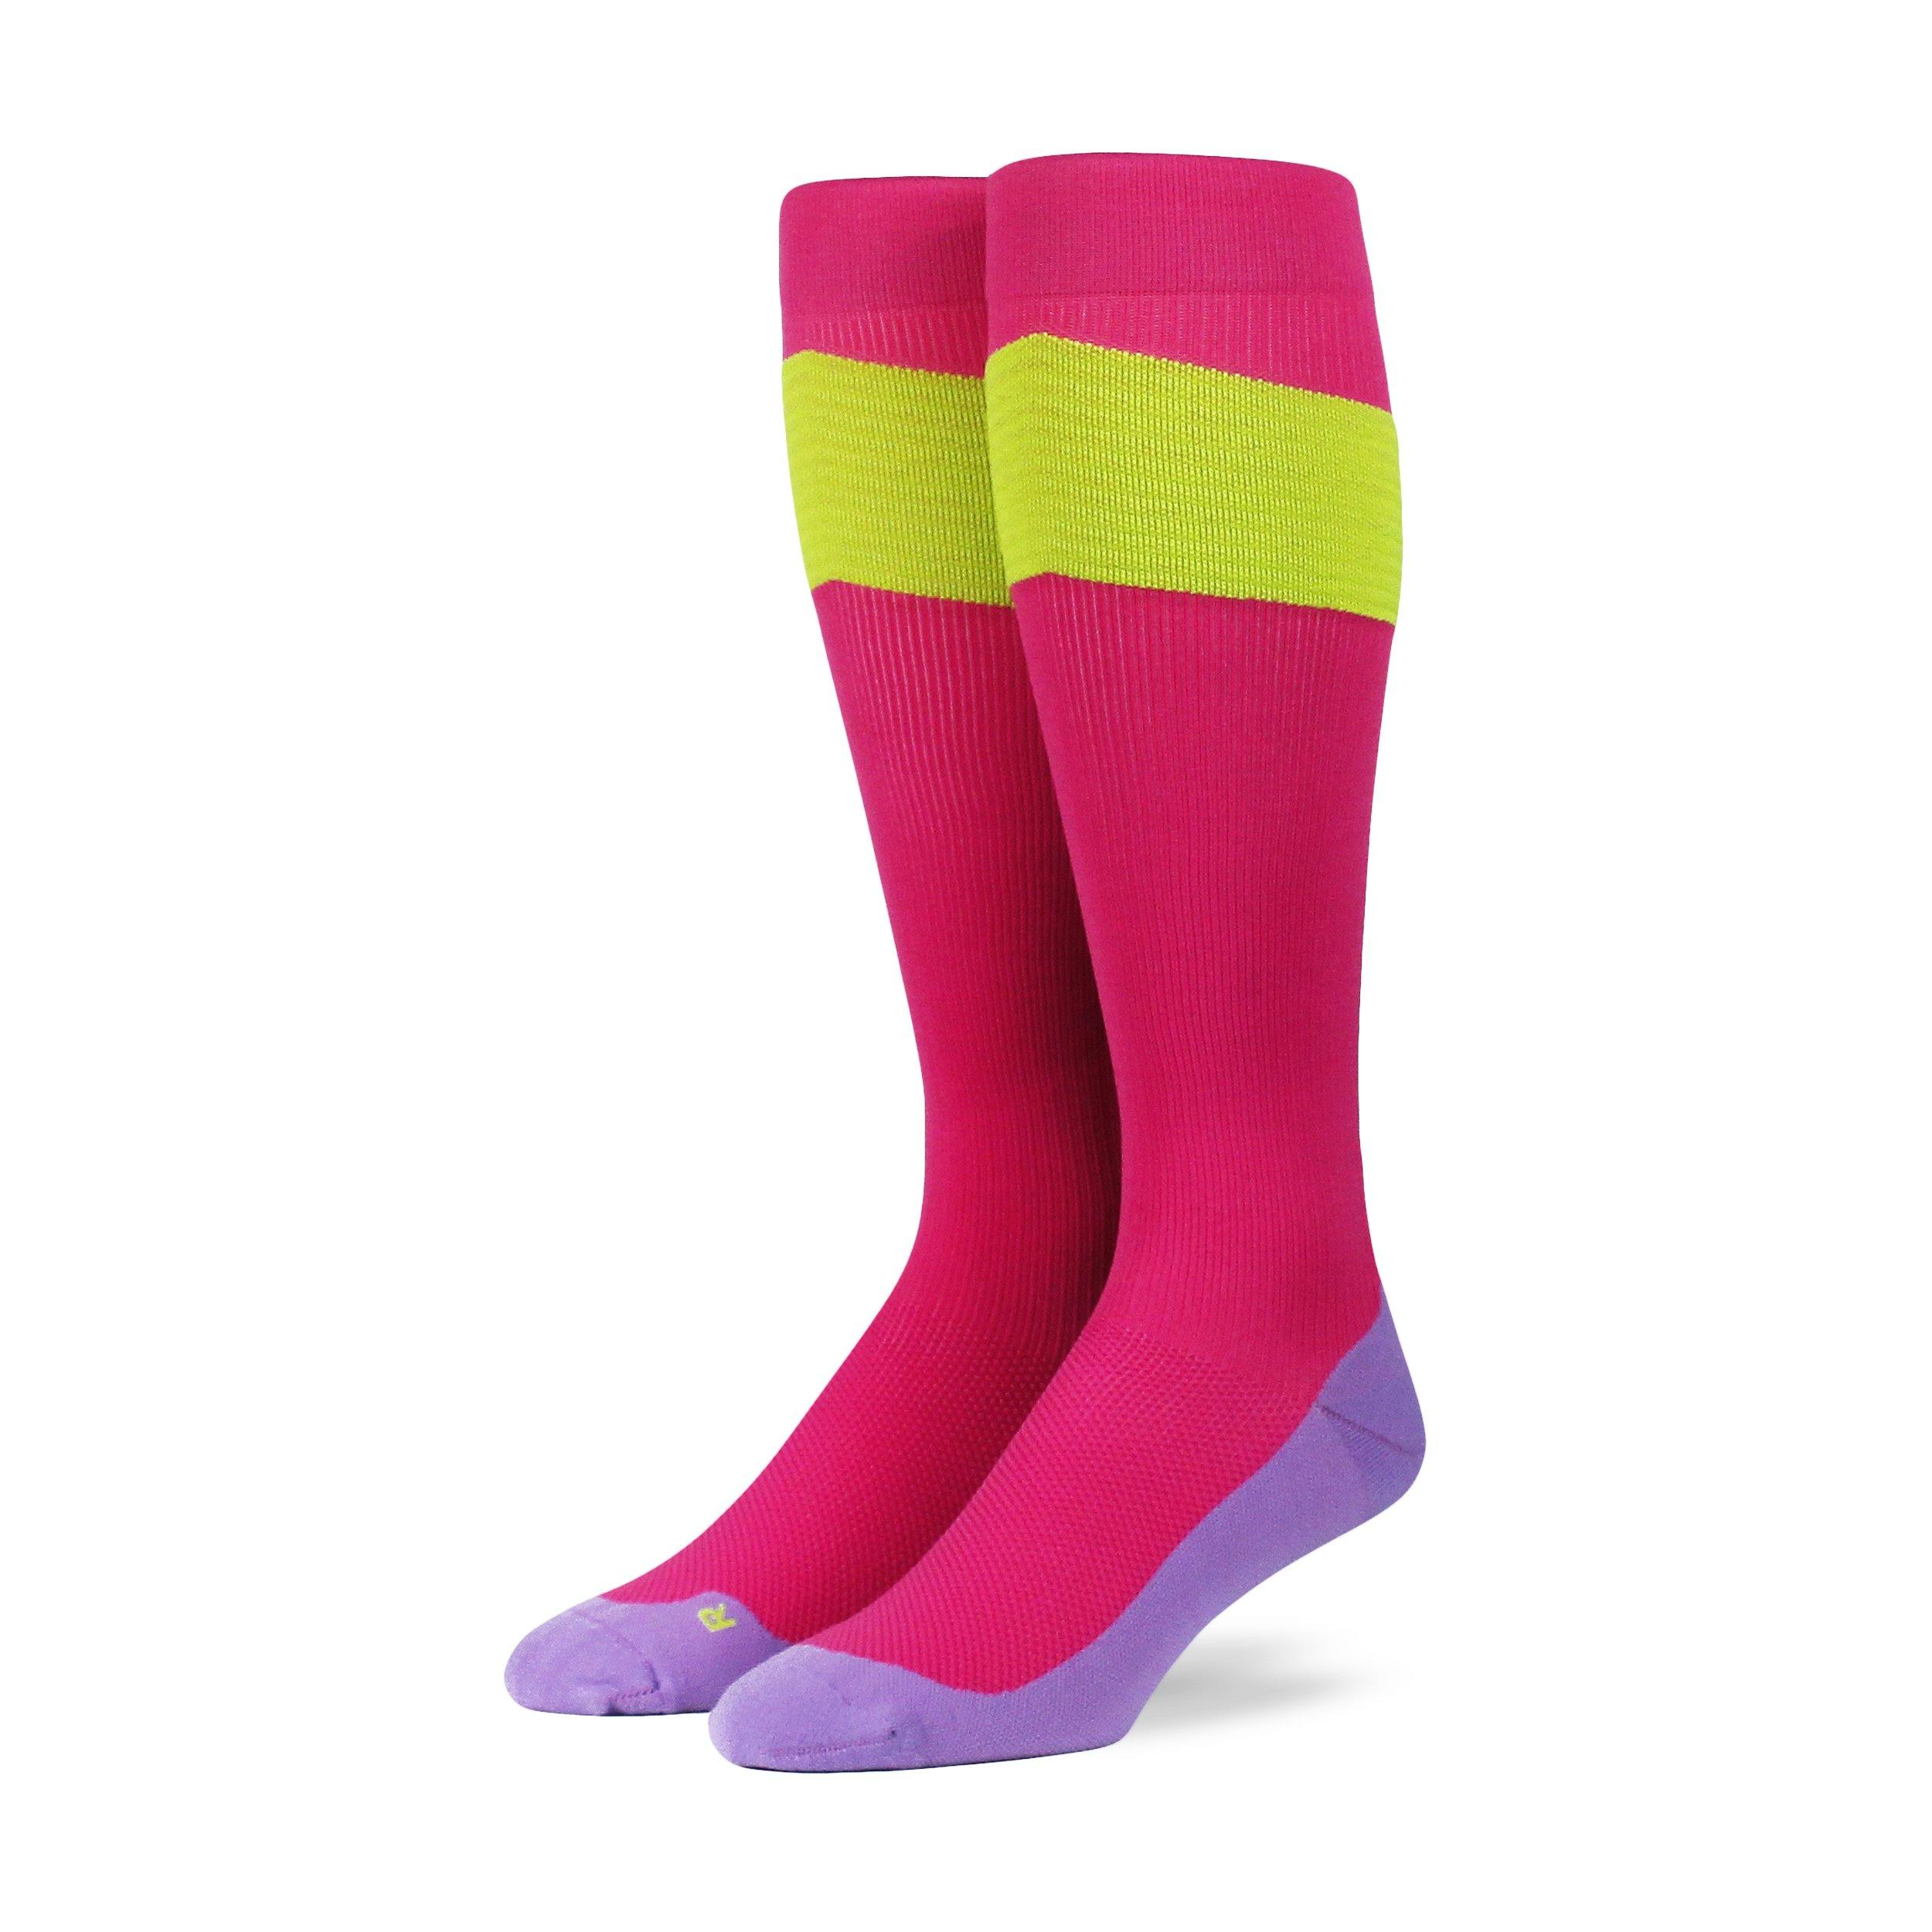 Performance OTC Compression Socks - Pink/Neon Yellow/Lavender